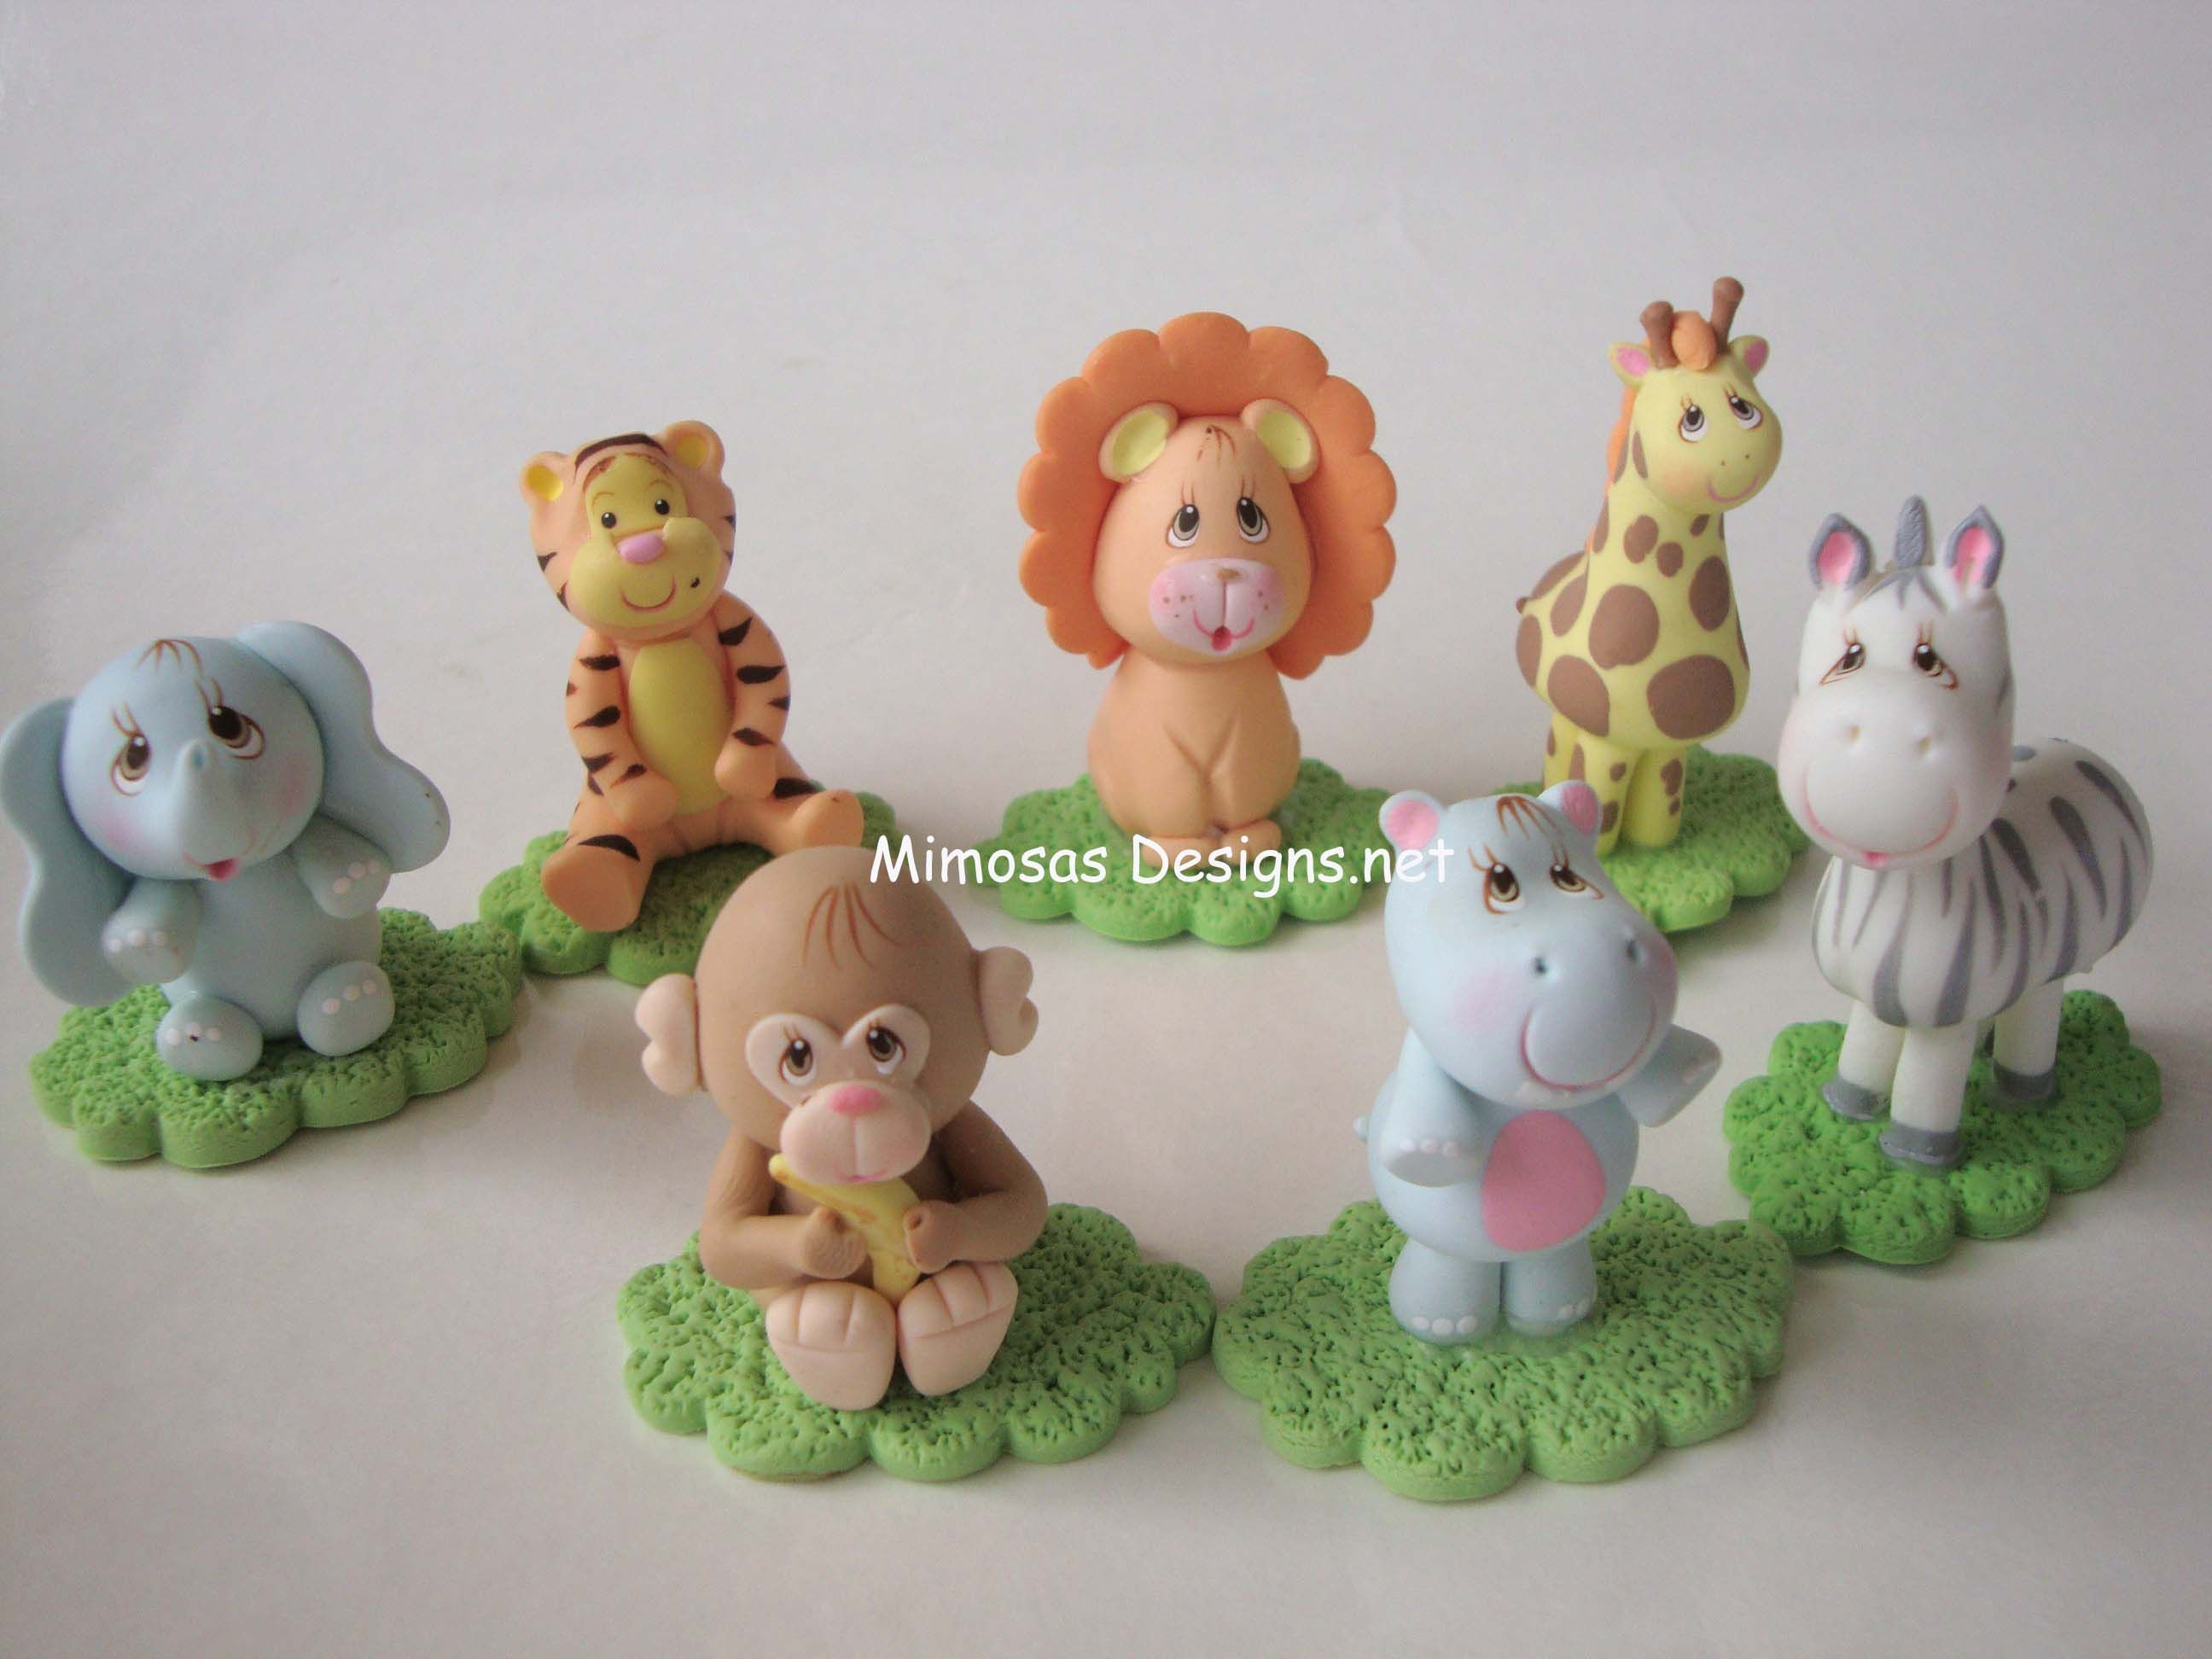 Maybe I can just these porcelain cake toppers that